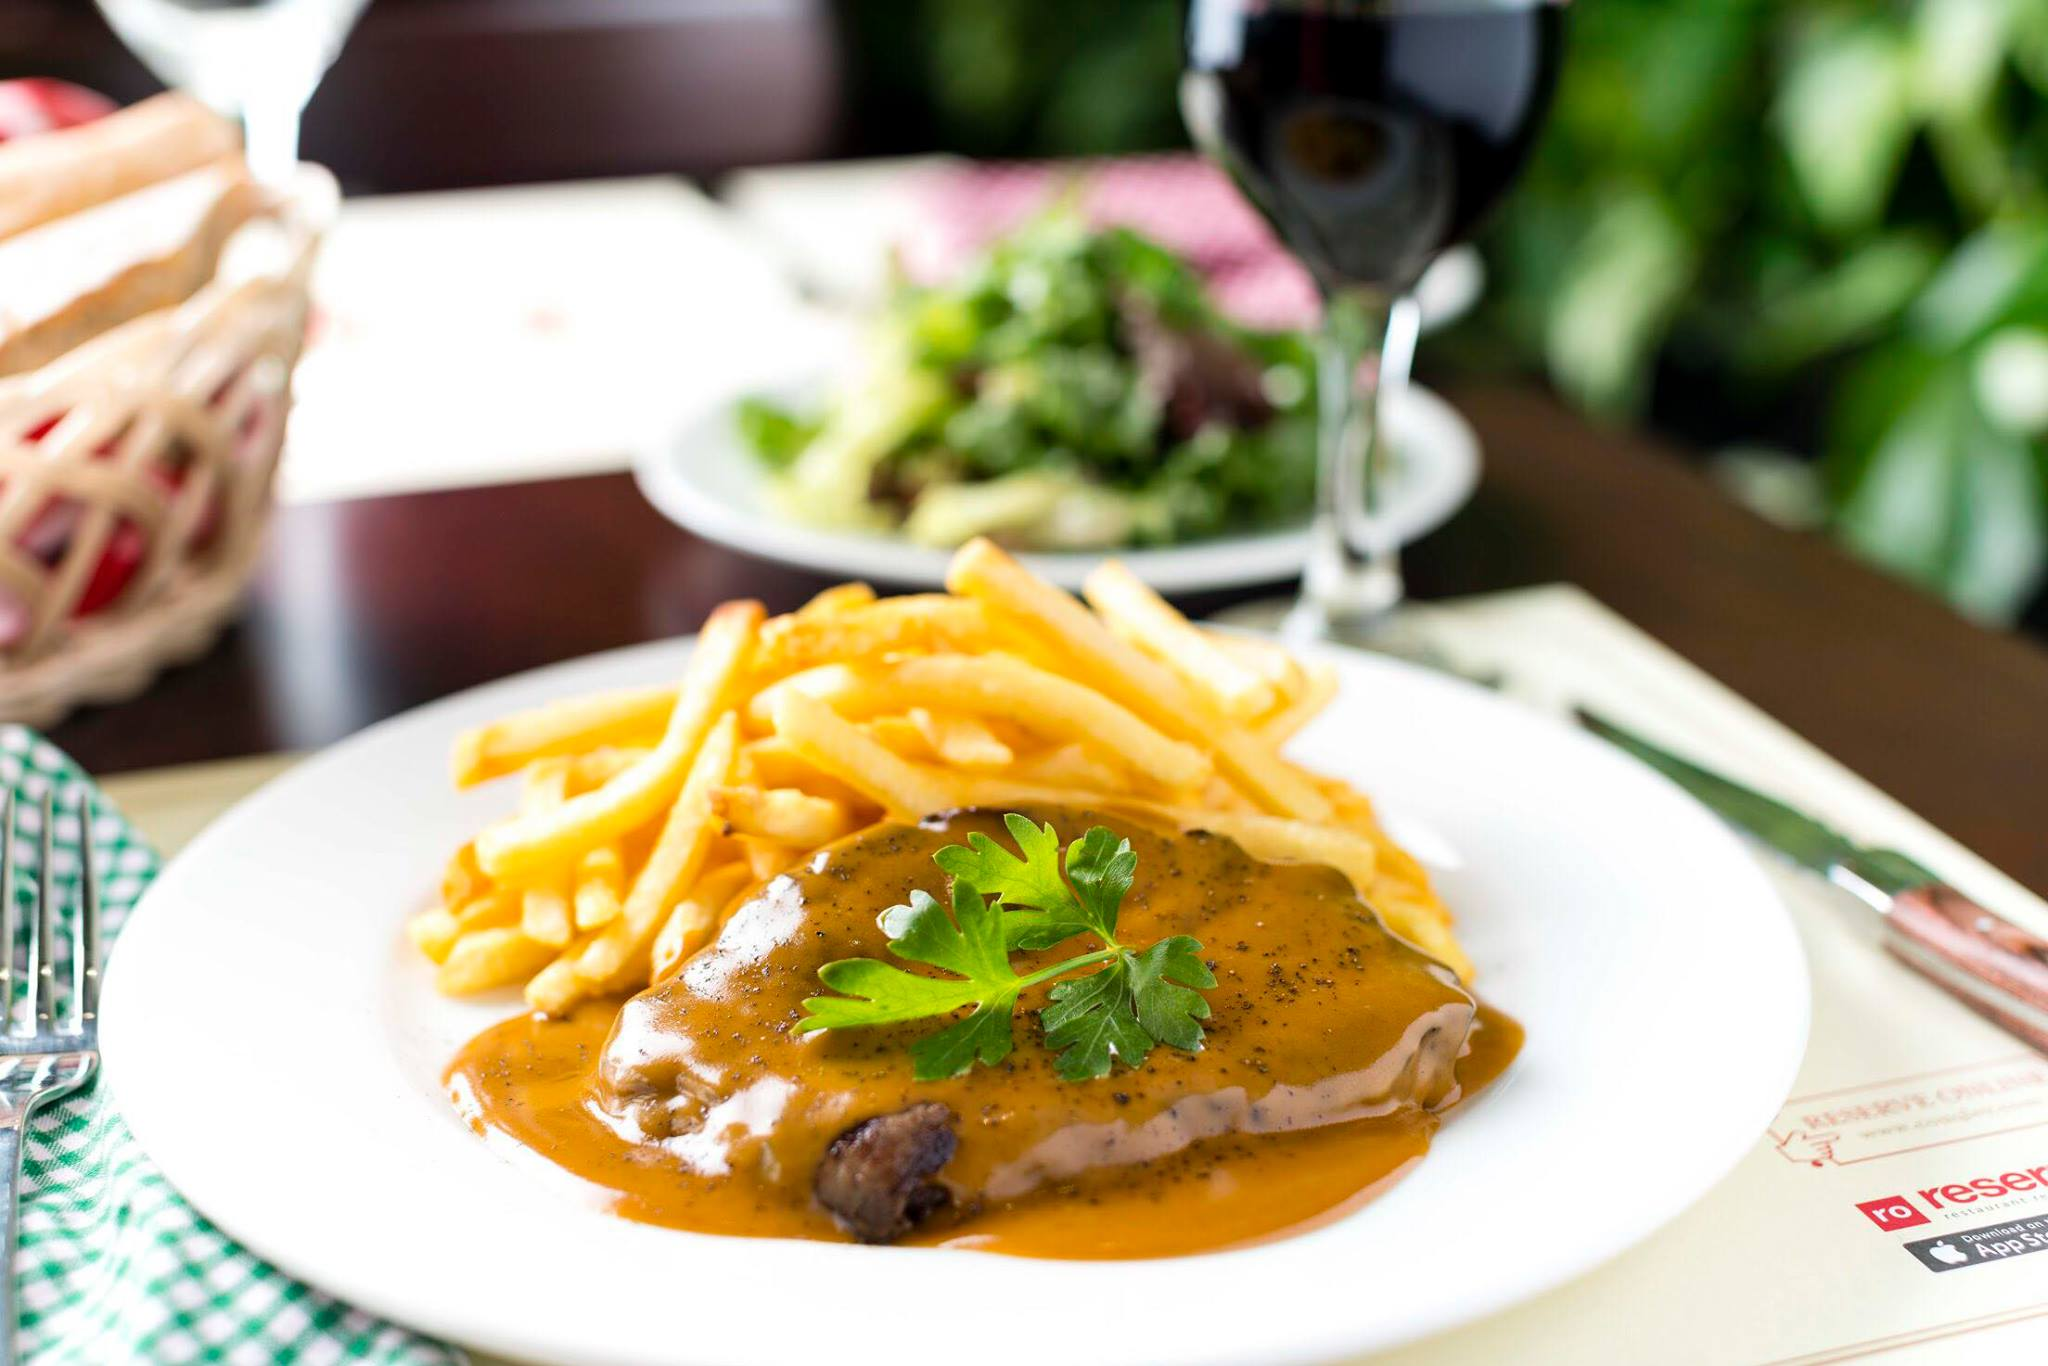 Steak Frites at Couqley Dubai